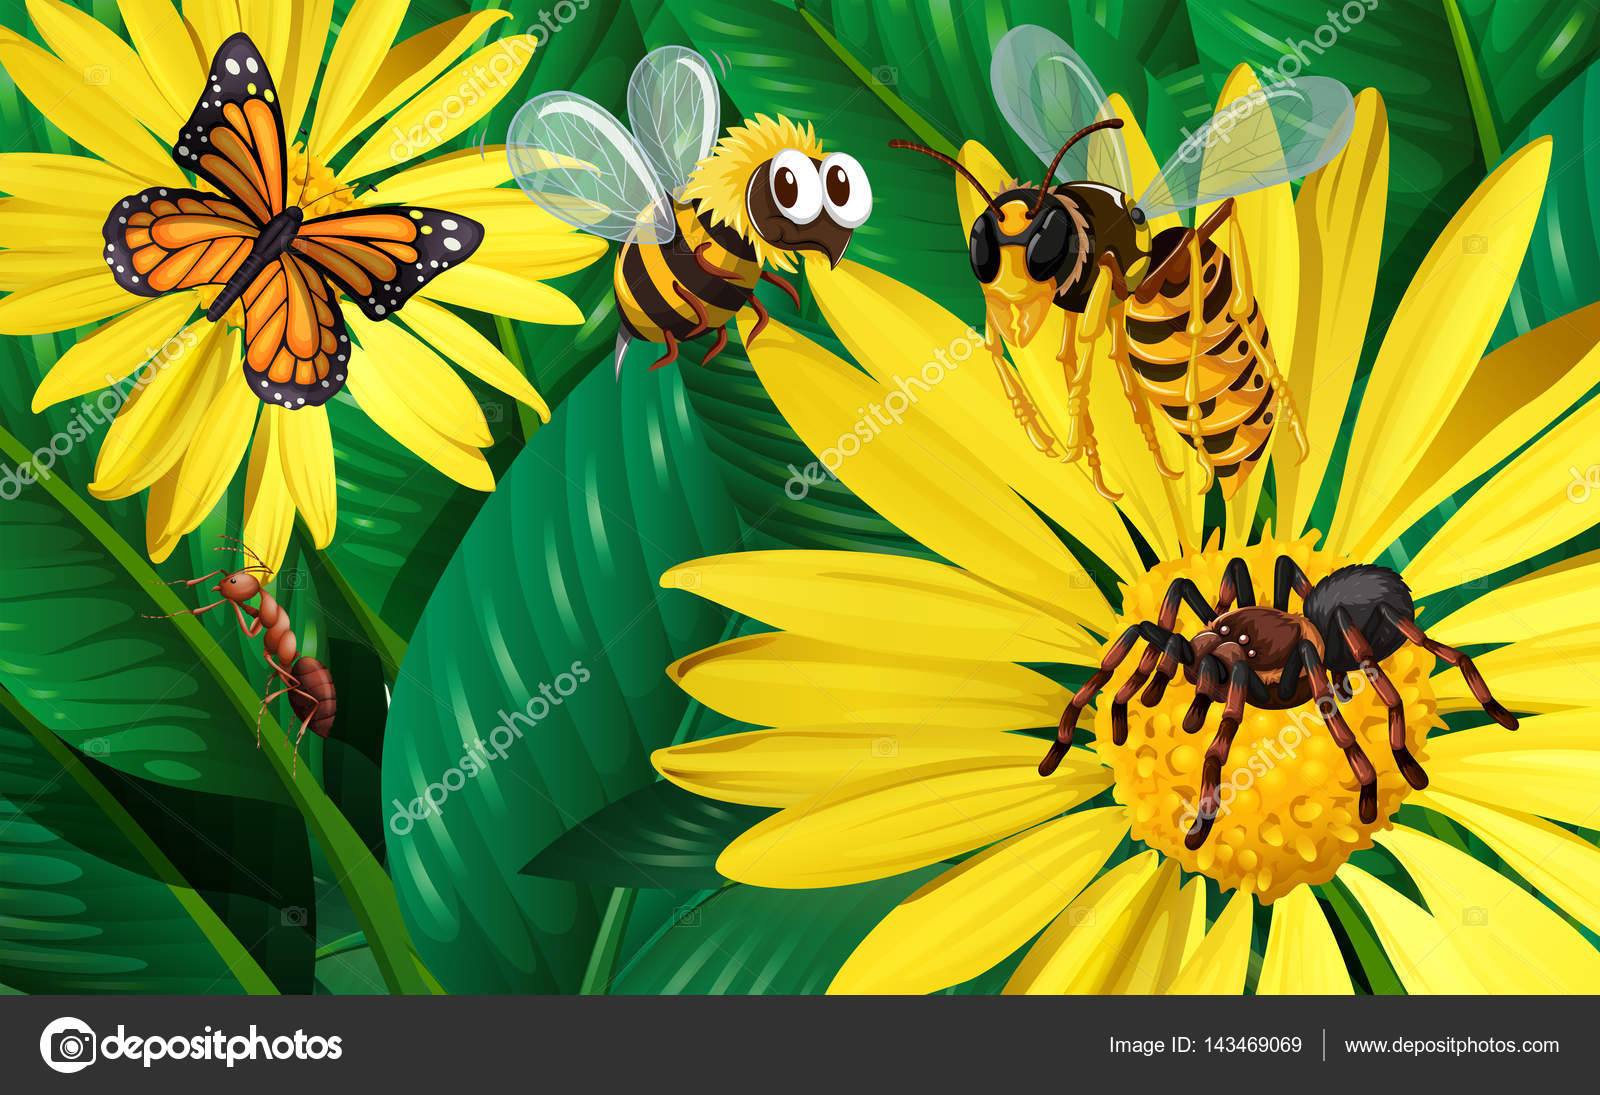 Different types of bugs flying around yellow flowers stock vector different types of bugs flying around yellow flowers illustration vector by blueringmedia mightylinksfo